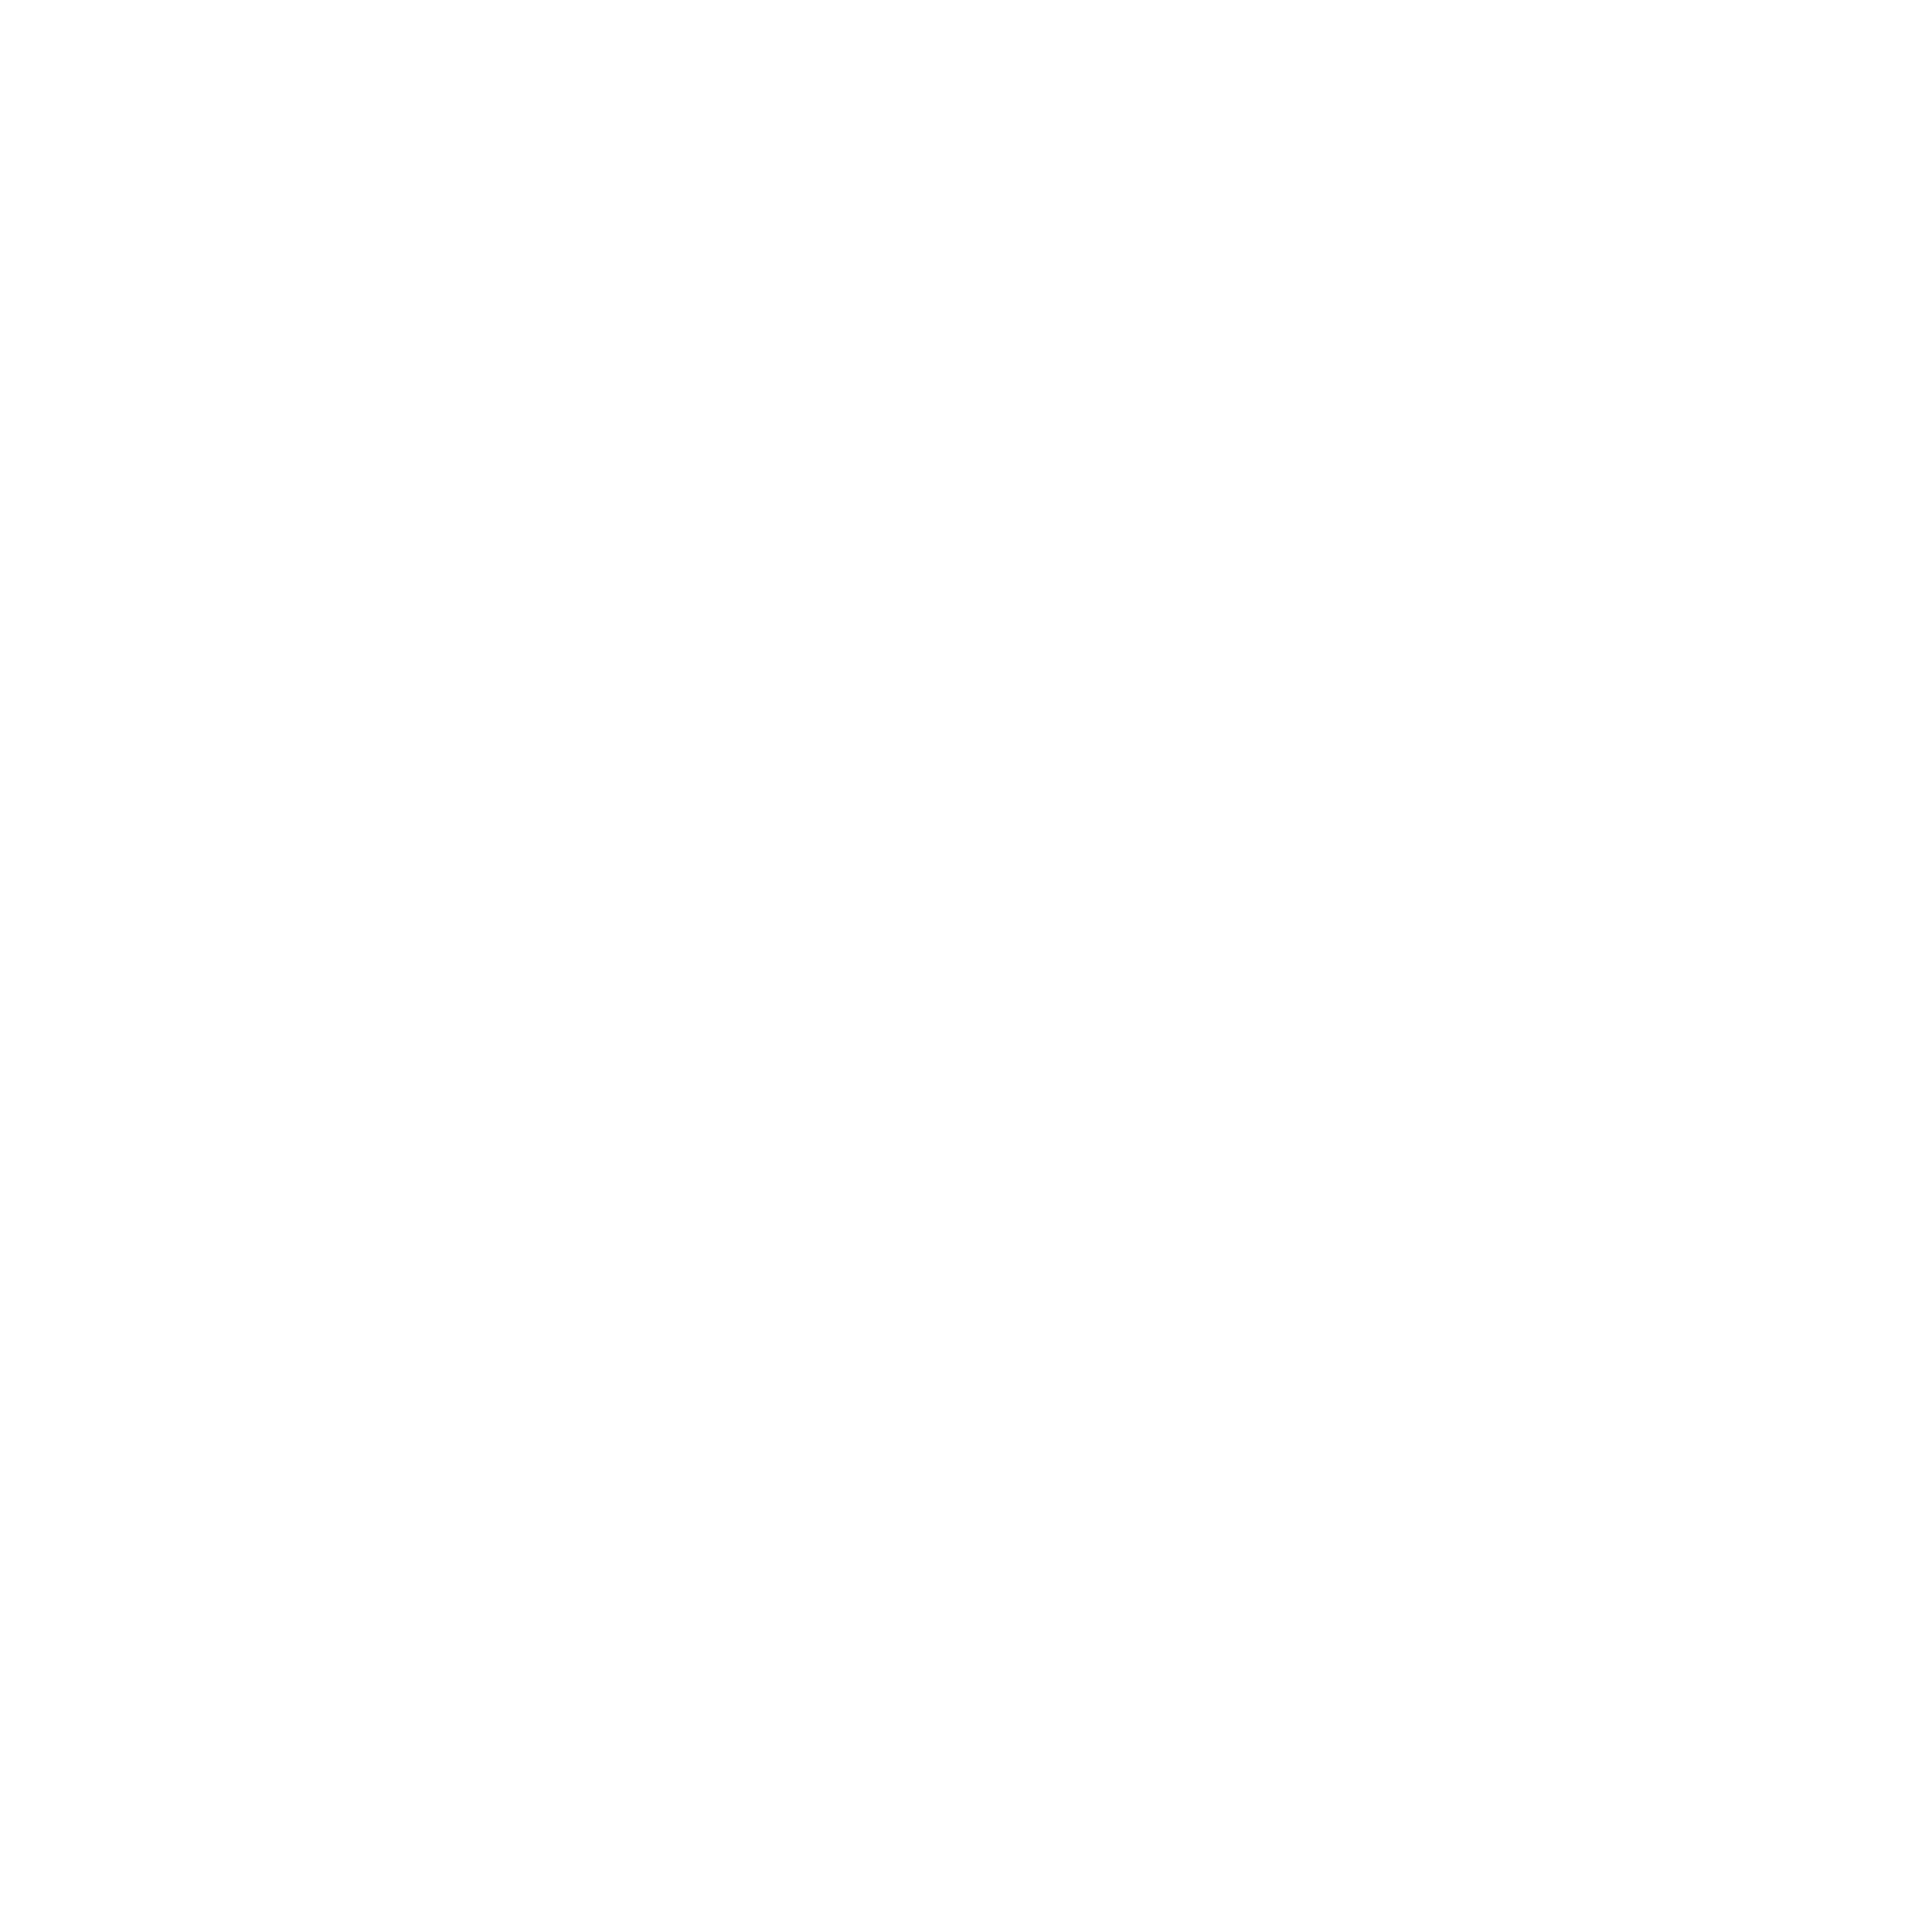 Drowning icon